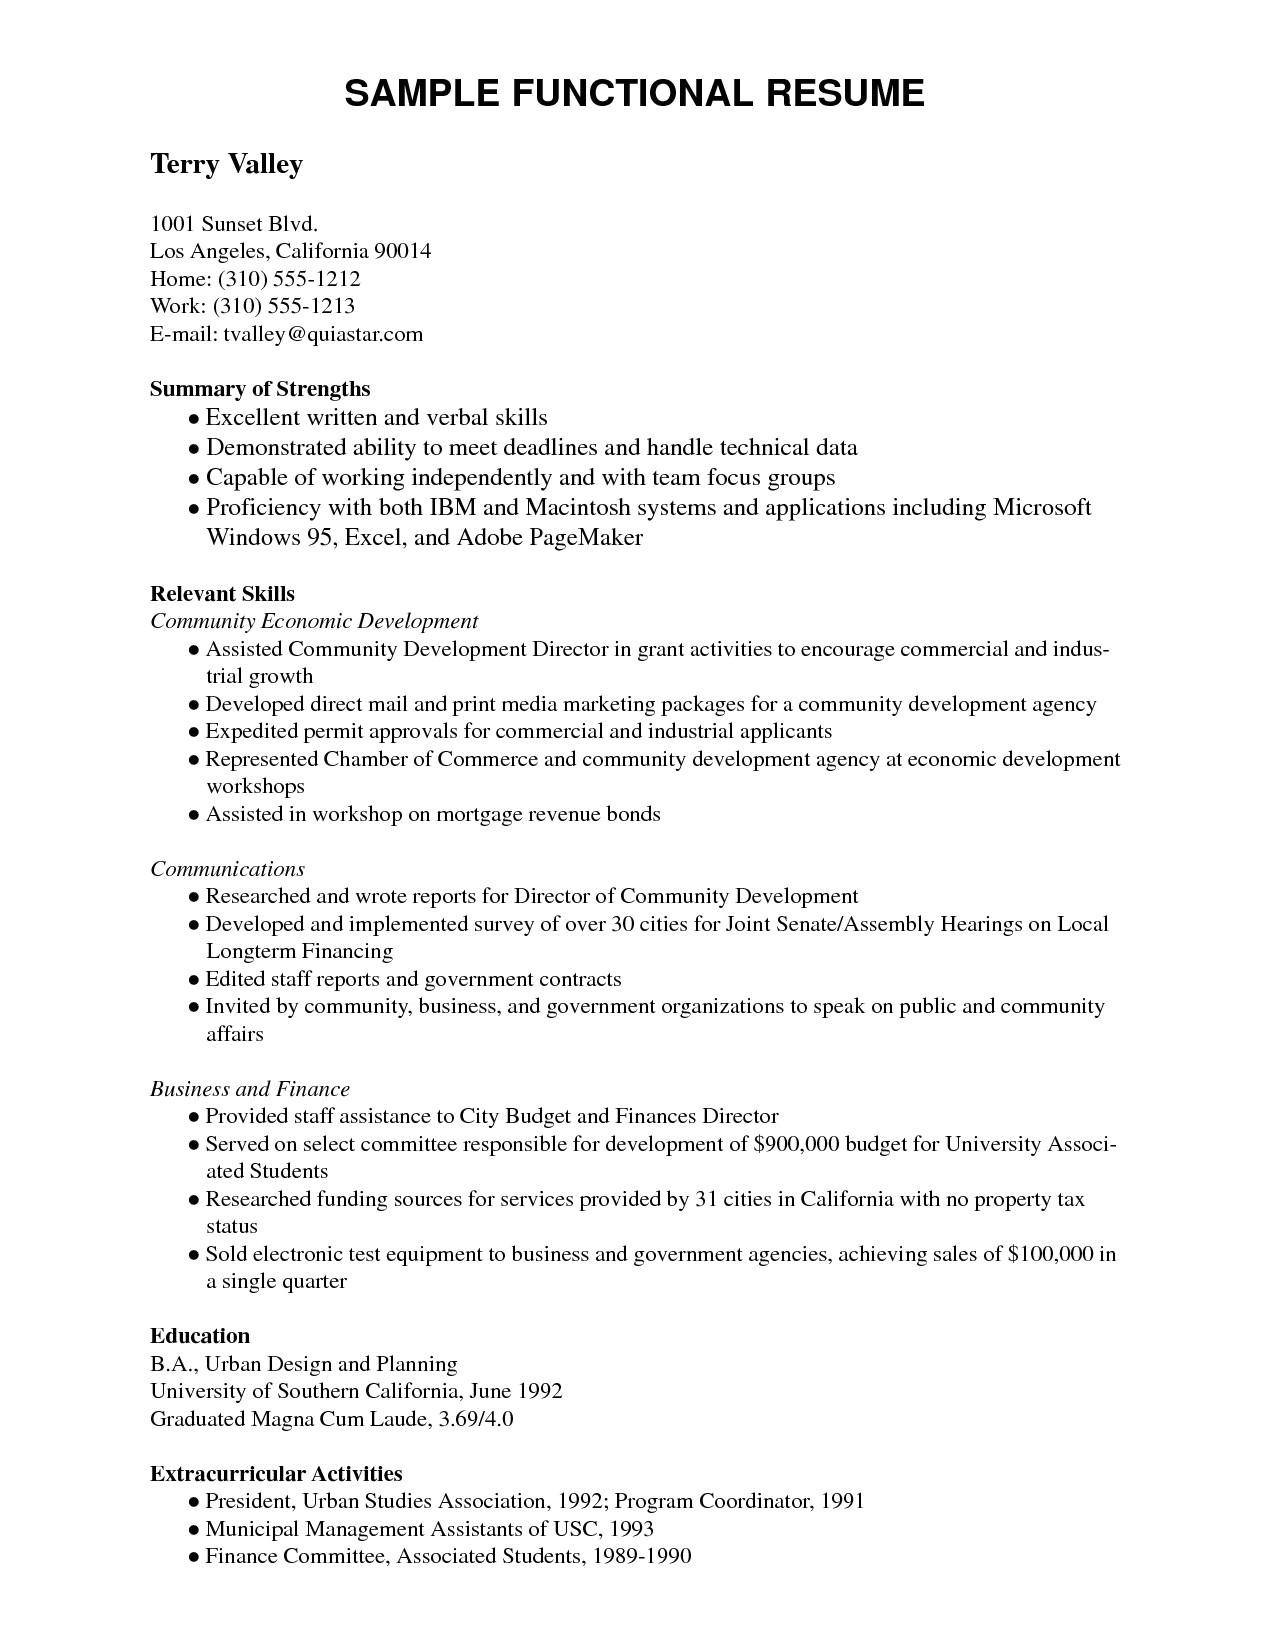 Usc Resume - 64 Concepts Resume Writing Template